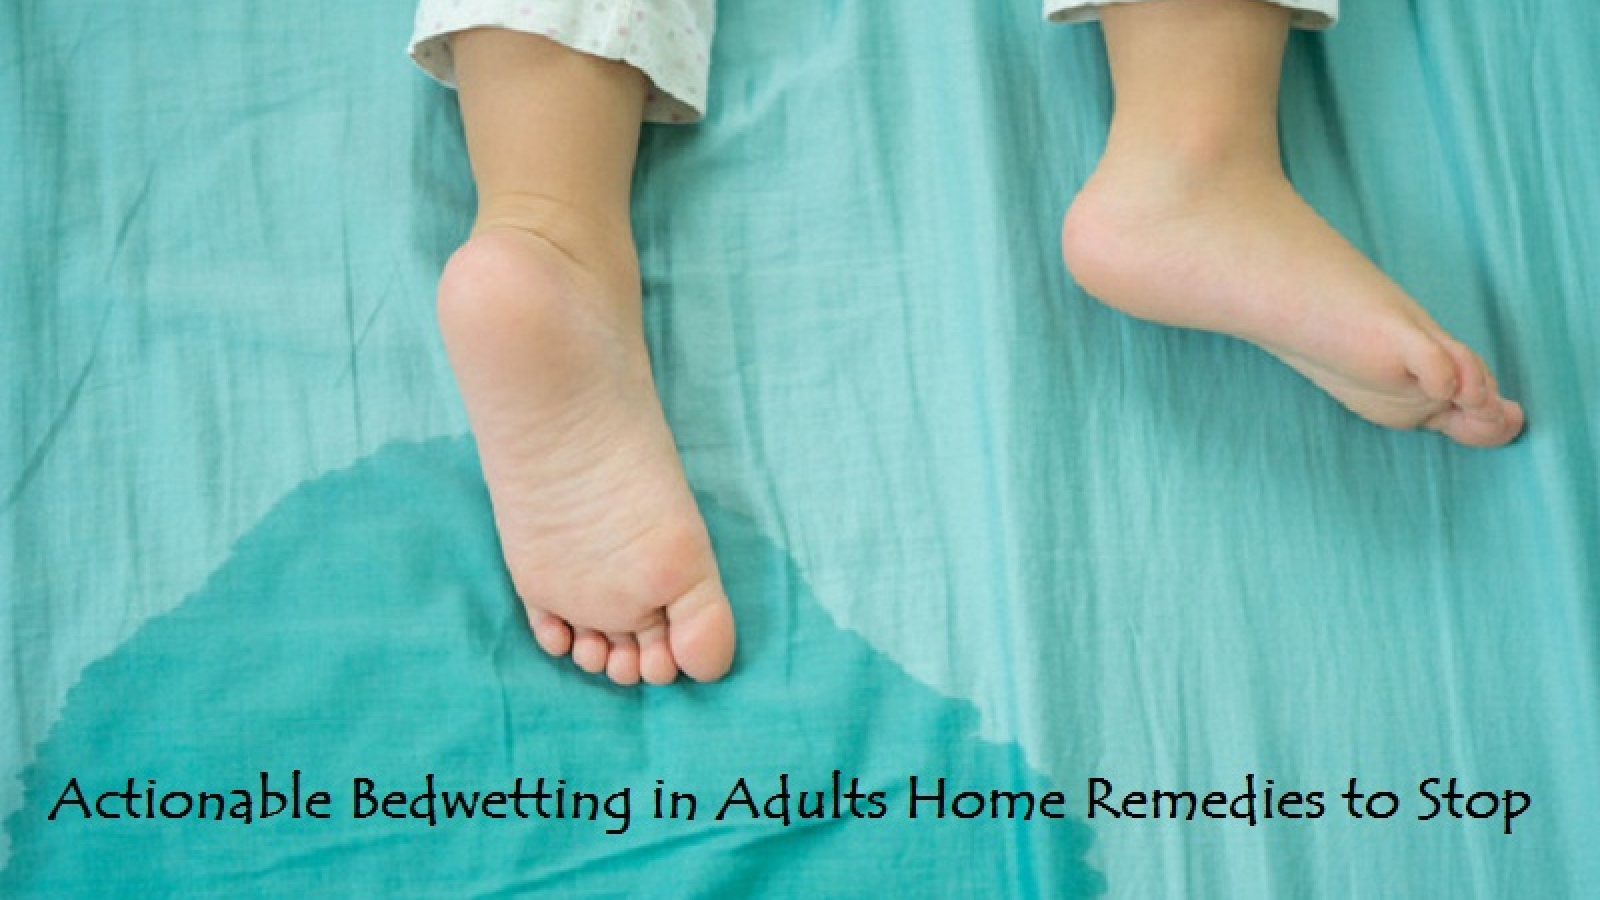 Bedwetting in Adults Home Remedies